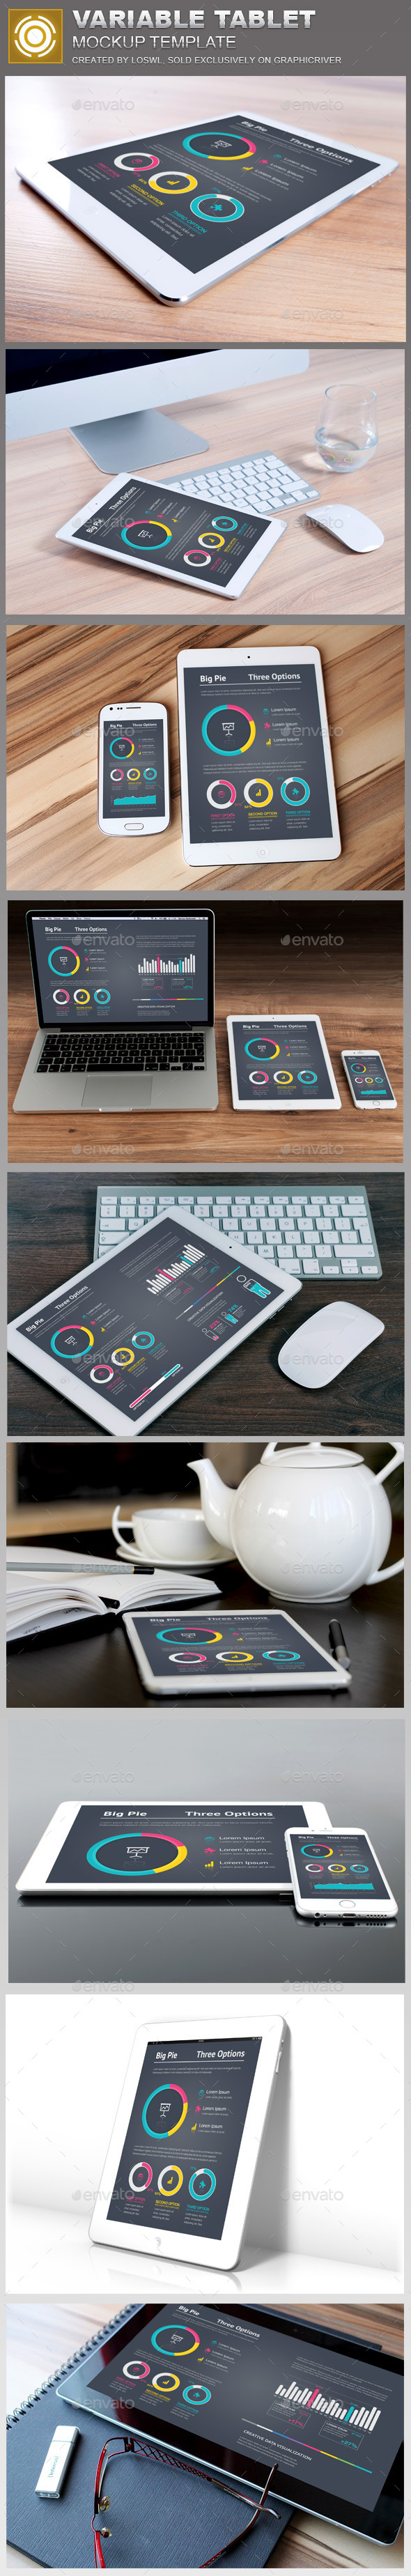 Variable Tablet Mockups Template - Product Mock-Ups Graphics